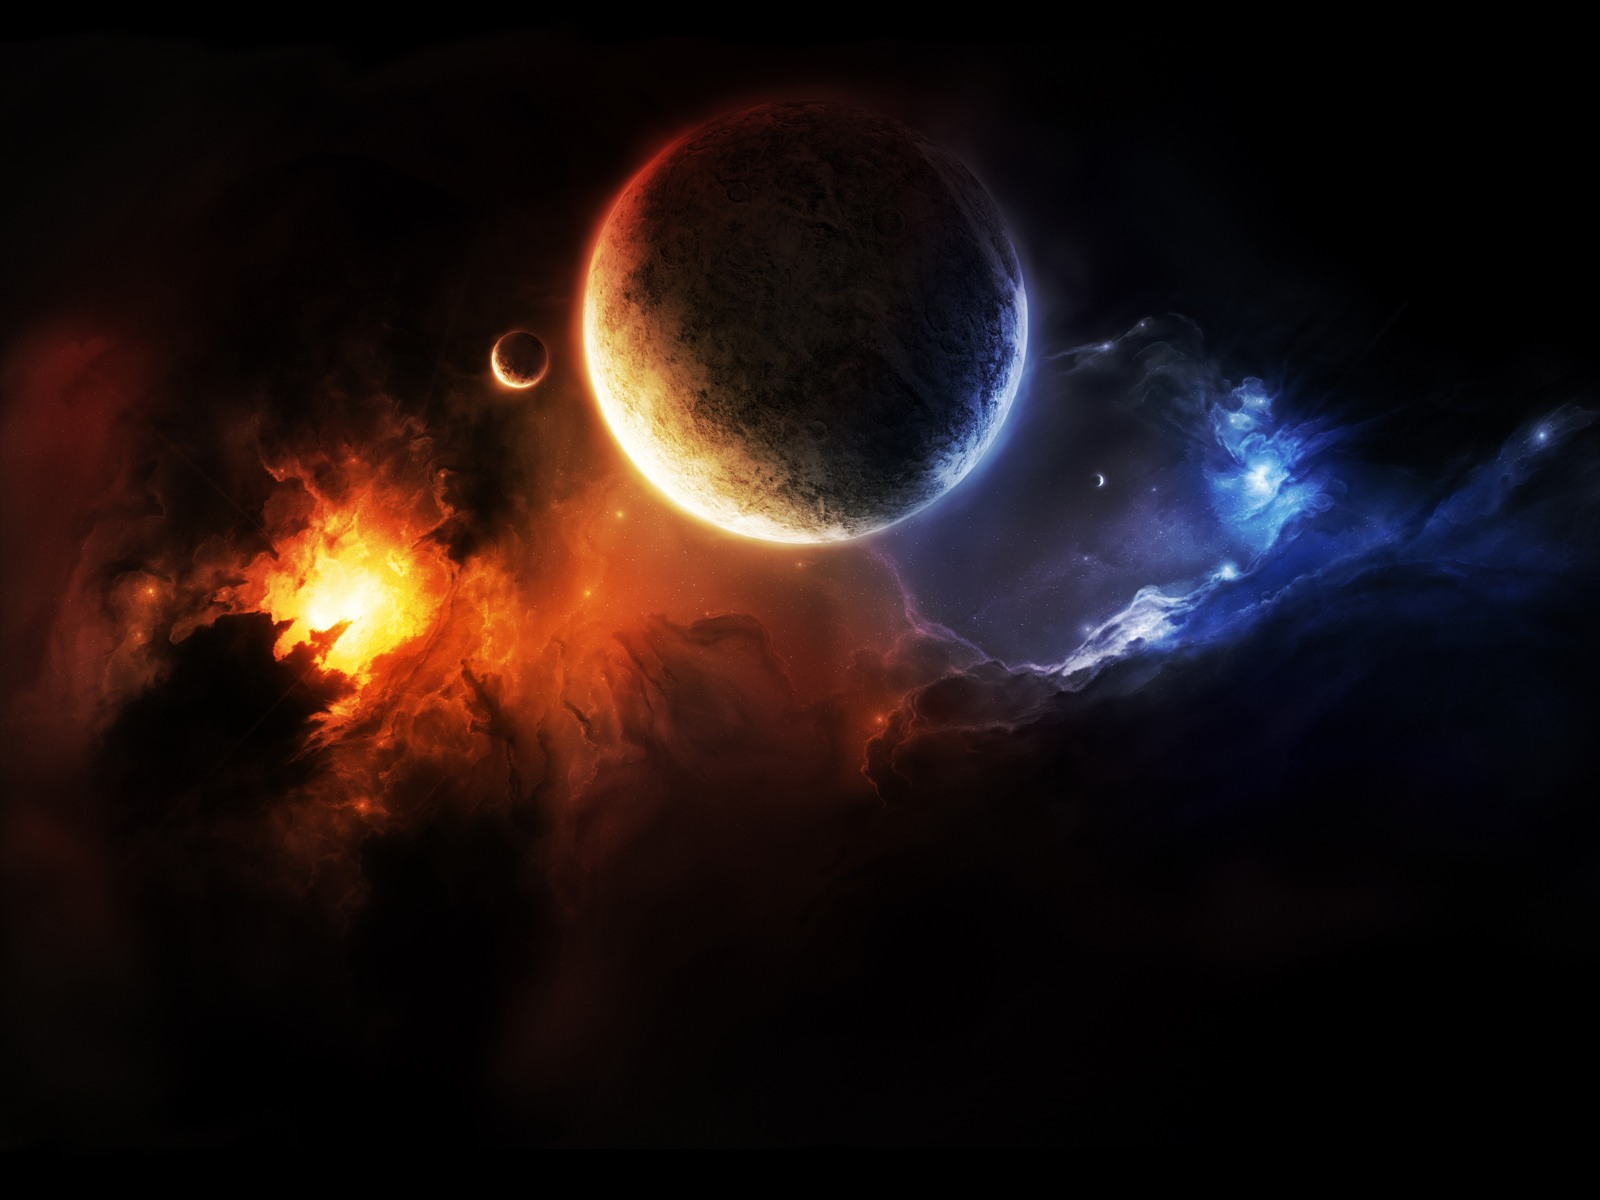 Deep Space desktop wallpaper 1600x1200